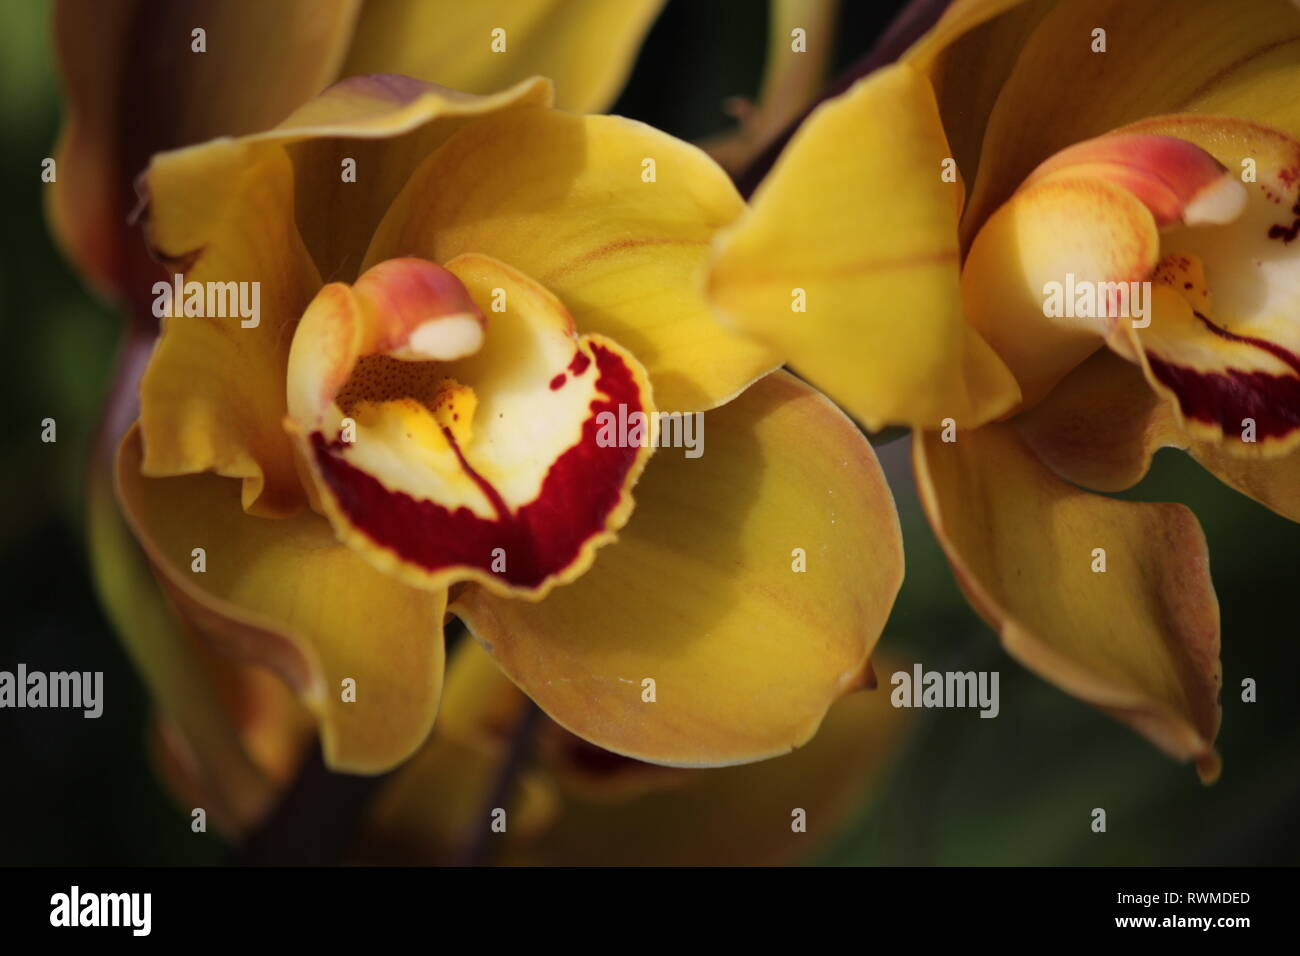 Beautiful, fresh cymbidium orchids flowers and plants at the Lincoln Park Conservatory in Chicago, Illinois. Stock Photo